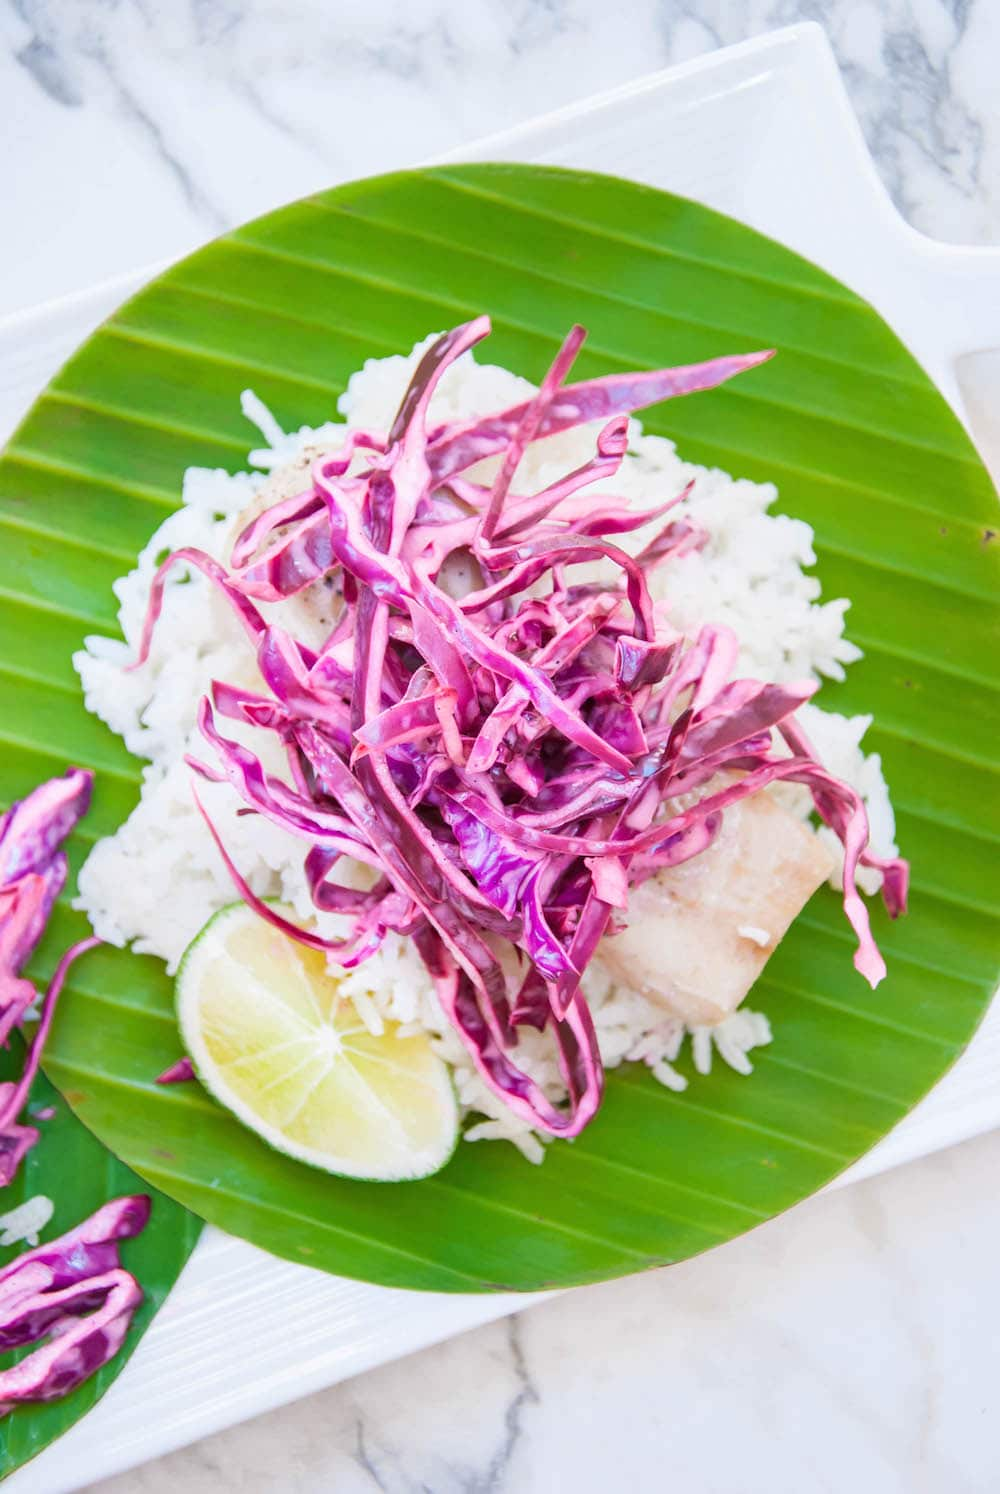 Mahi Mahi Baked in Banana Leaves with Island Slaw